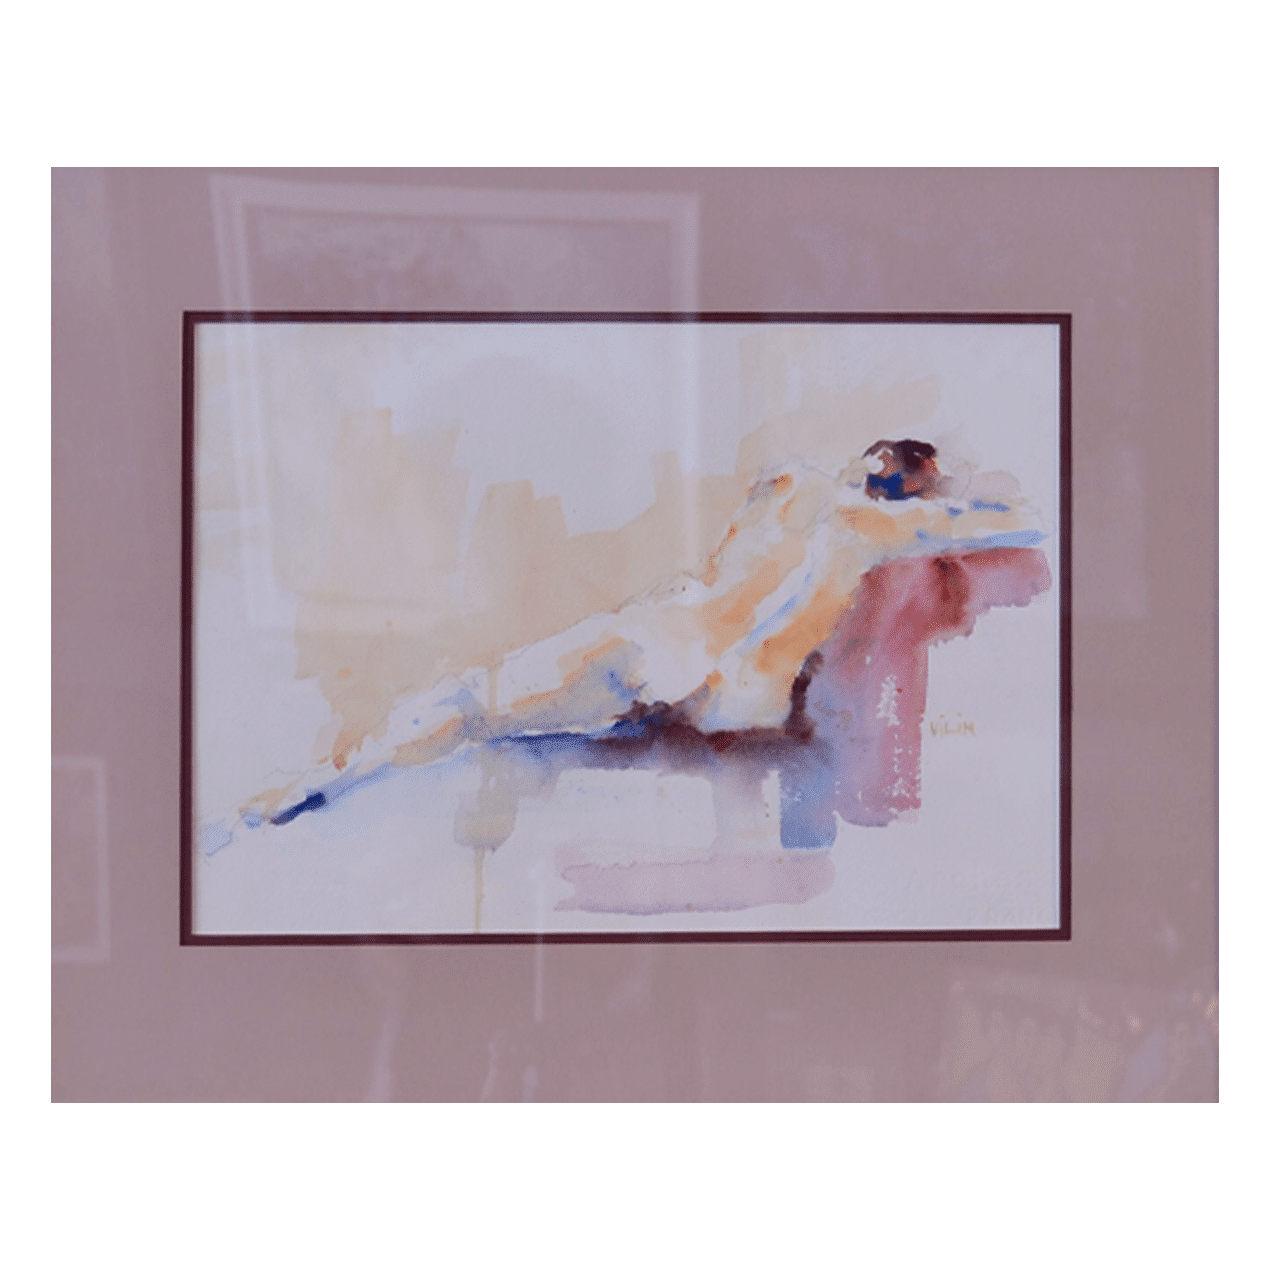 Ron Vilim W 22' x H 18' Watercolour on Paper Framed